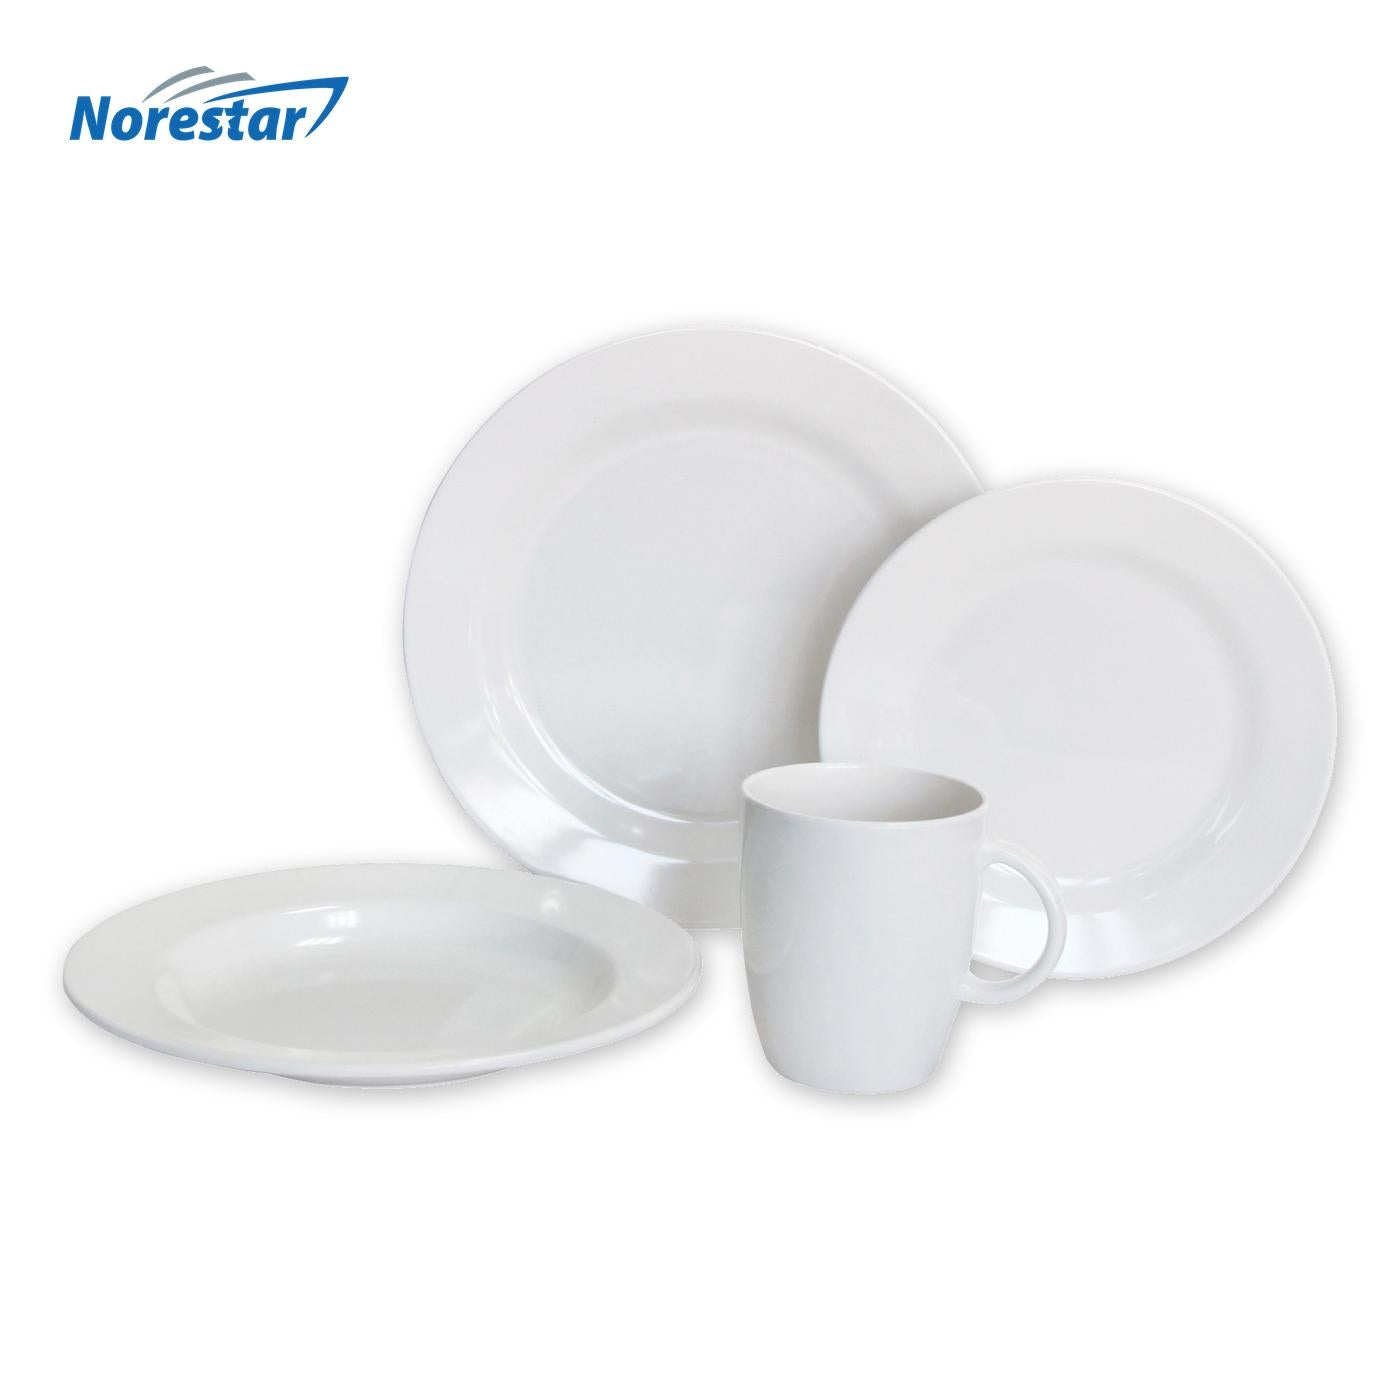 16 Piece Non-Skid Melamine Galleyware Solid White Collection ...  sc 1 st  Anchoring.com & 16 piece non-skid melamine galleyware solid white collection ...